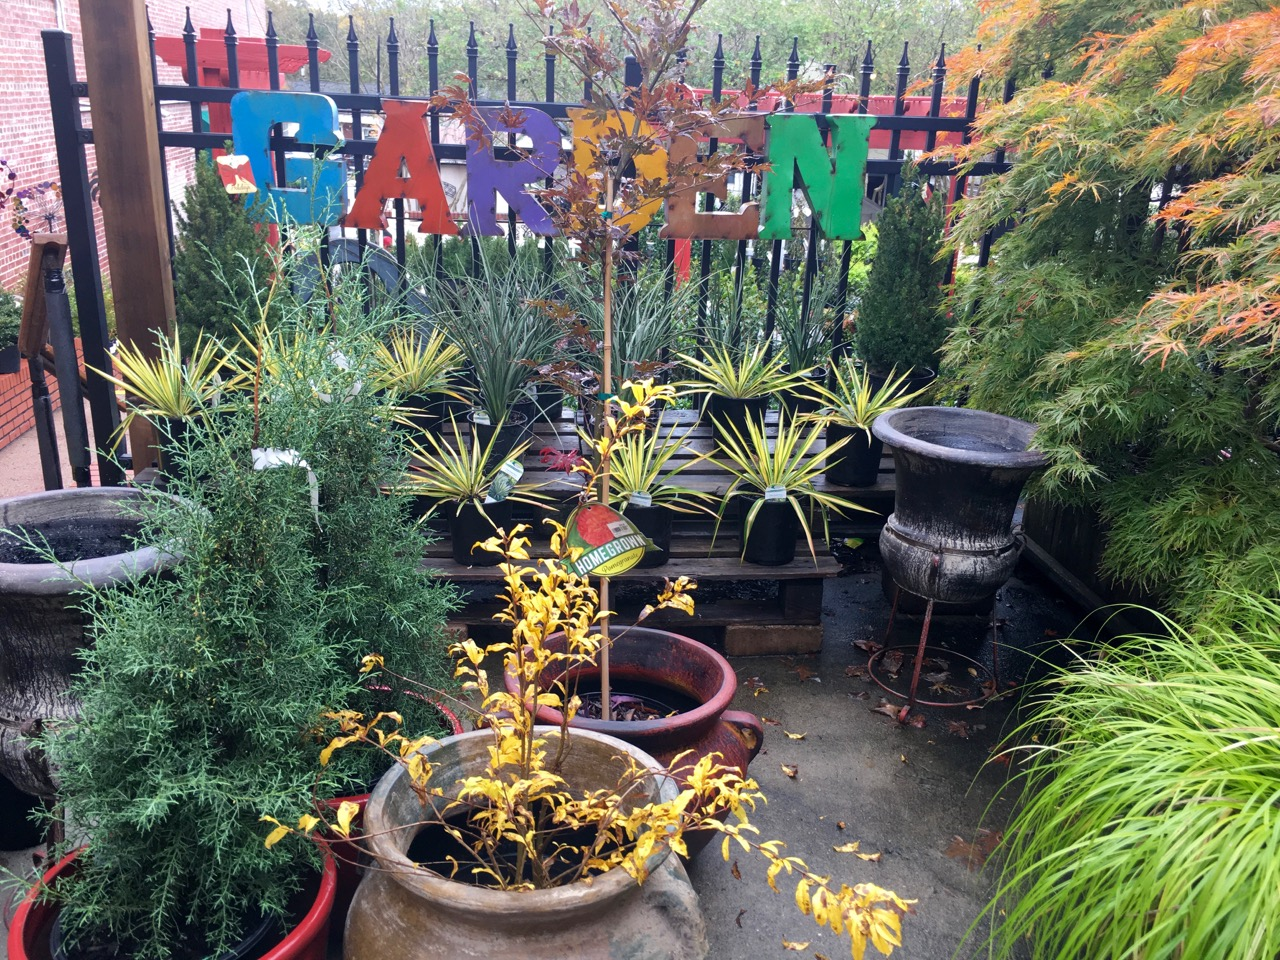 Fall Plants at Blackhawk Hardware Garden Center